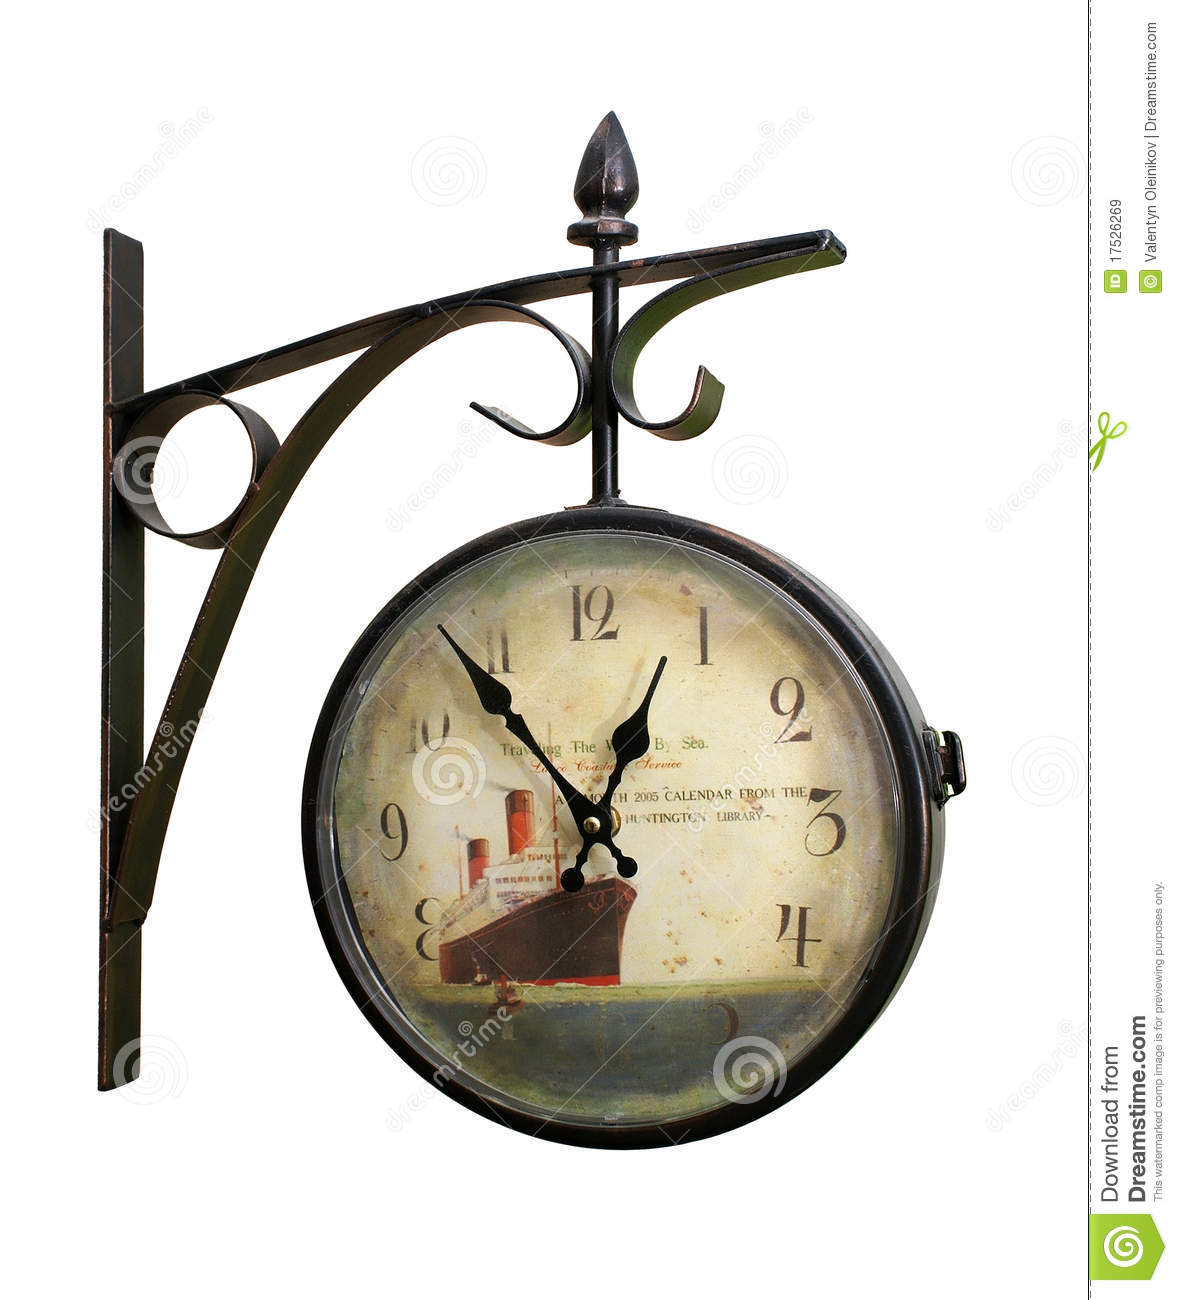 Wall mounted clock royalty free stock images image 17526269 - Wall mounted grandfather clock ...